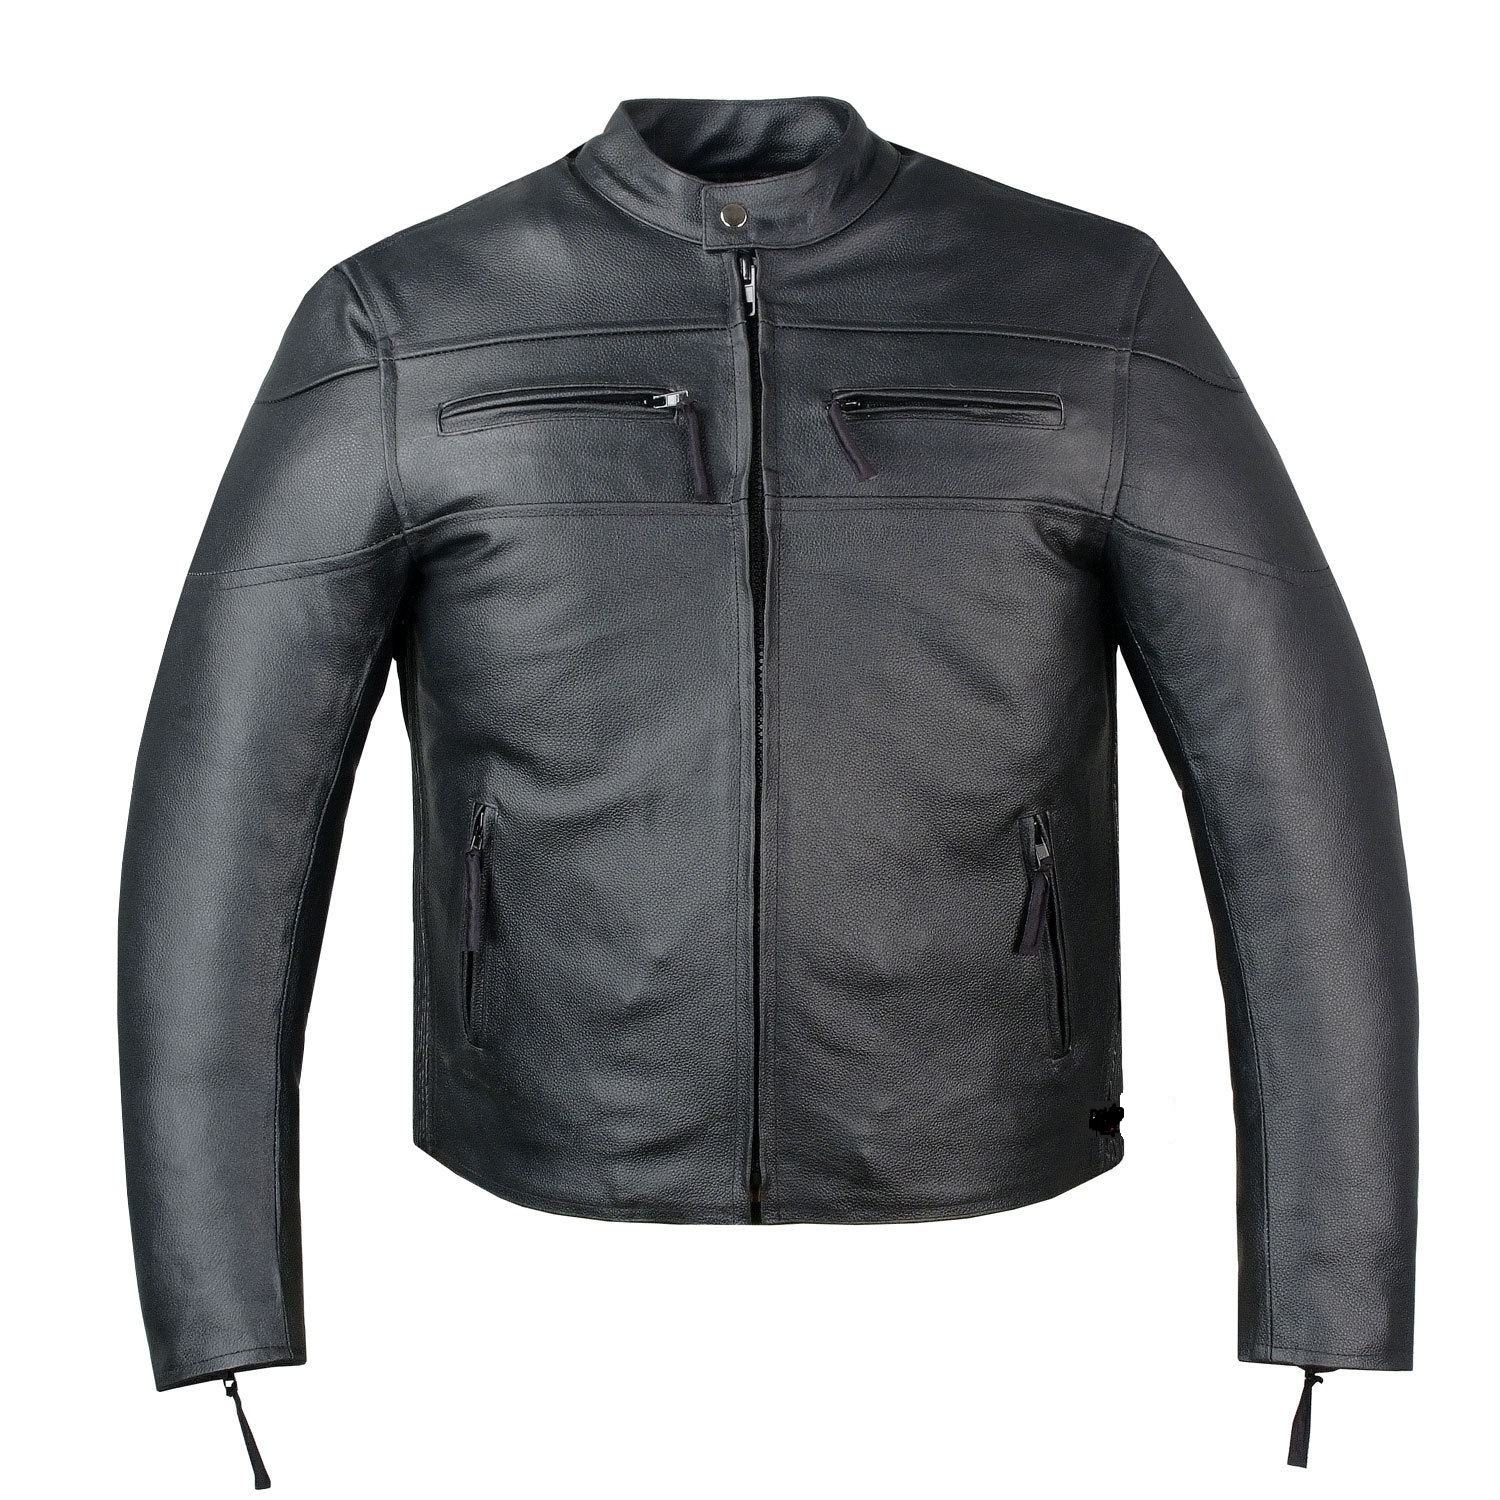 New Handmade Men's Armor Touring Motorcycle Leather Cruiser Stretchable Jacket B, used for sale  USA